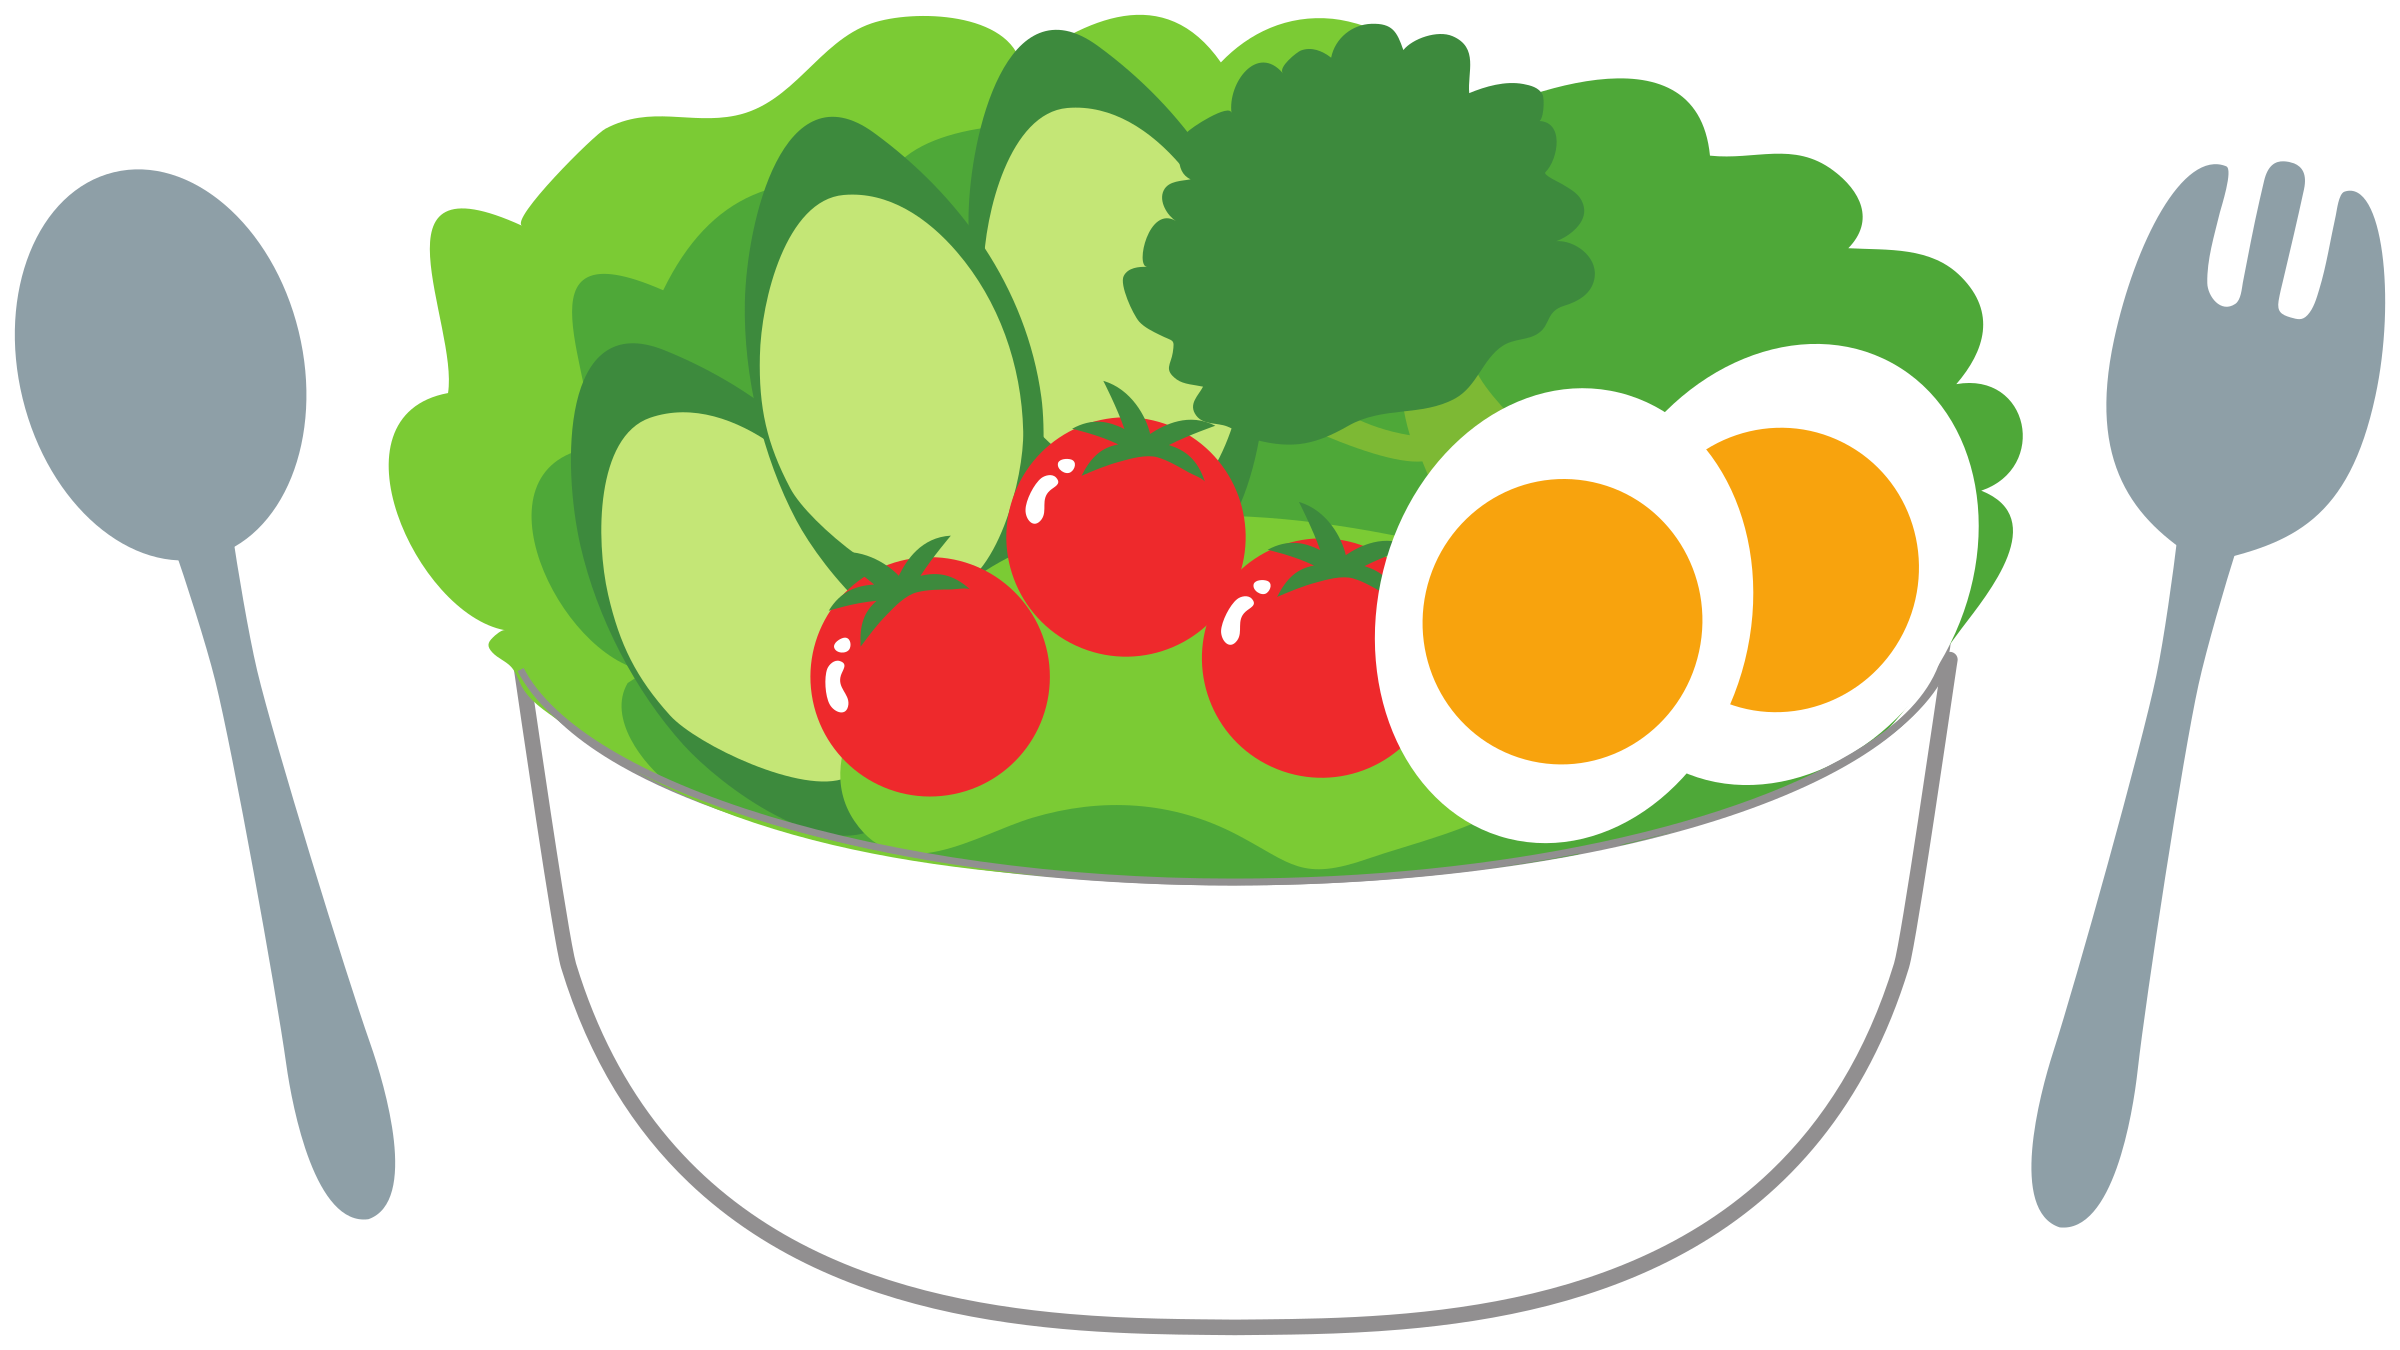 Salad clipart png. With fresh tomatoes cucumber